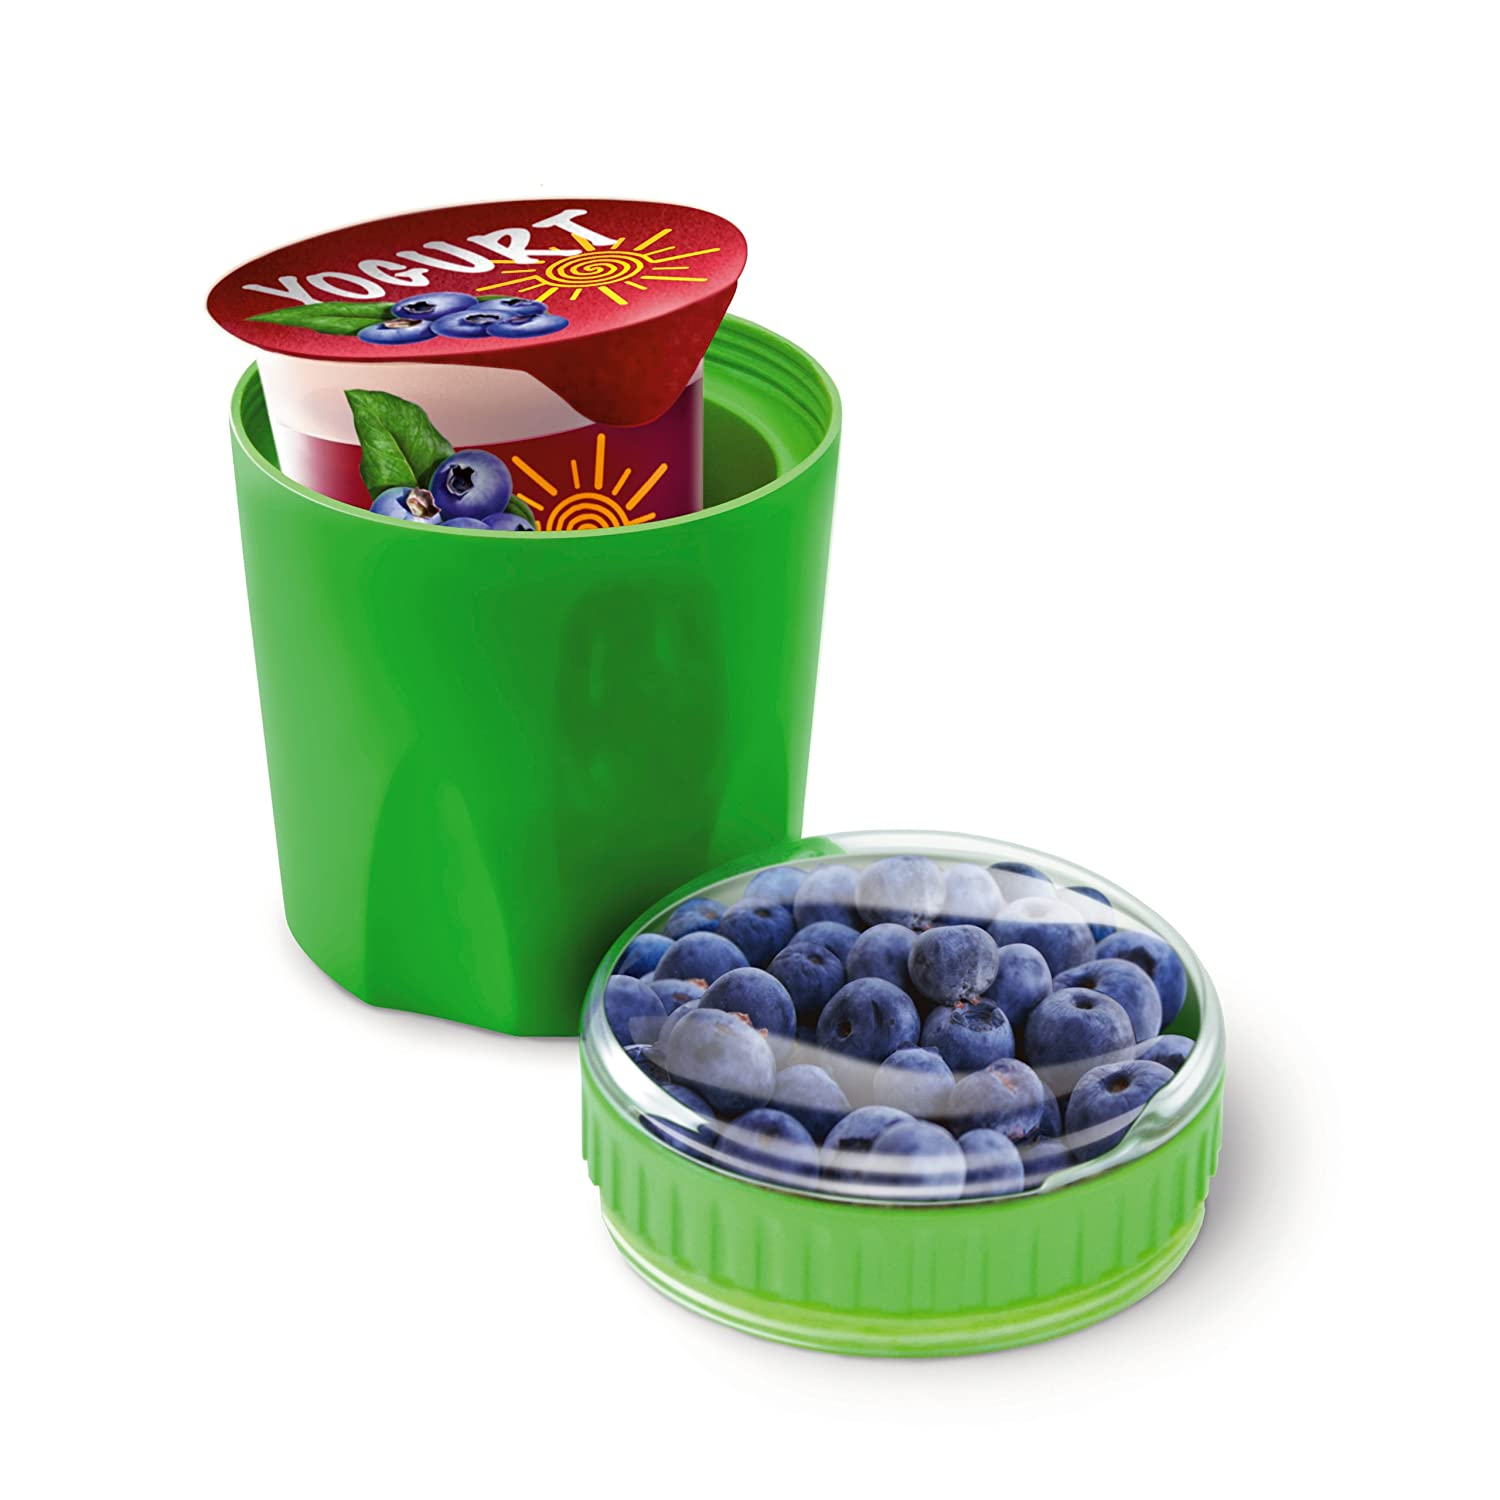 Amazoncom Fit Fresh Chilled Yogurt and Snack Container Reusable